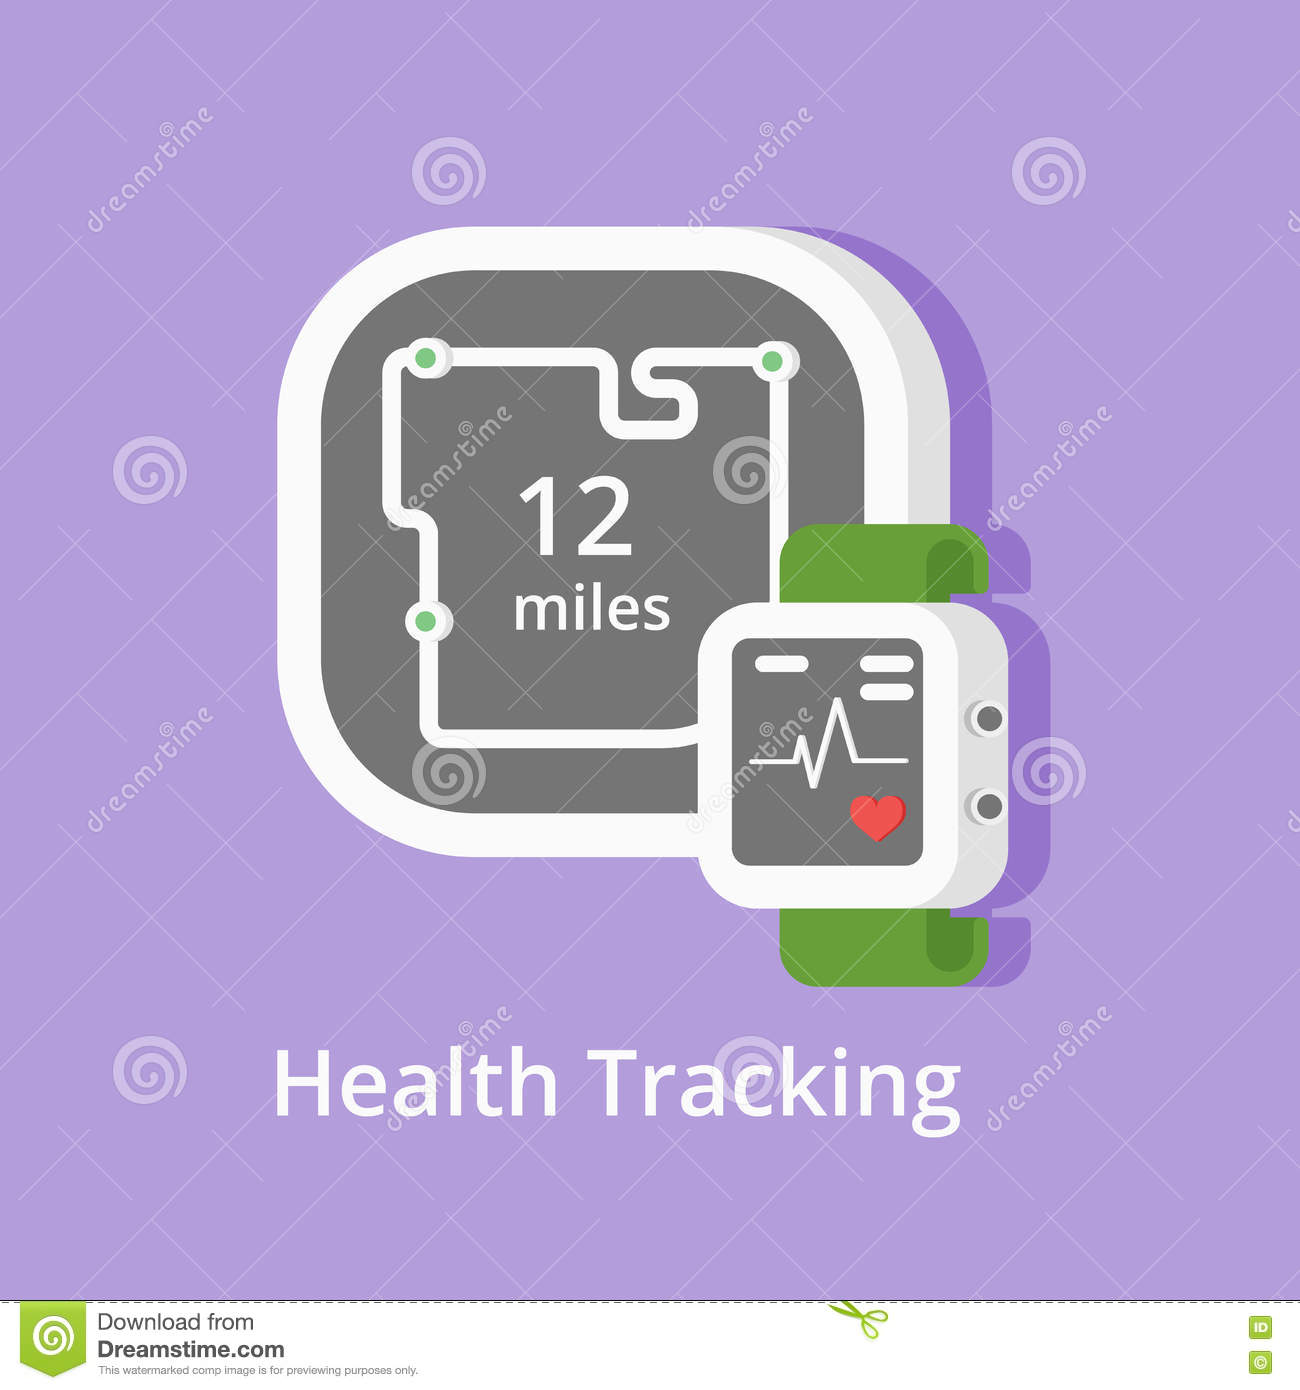 vector fitness tracker icon showing health condition and miles with